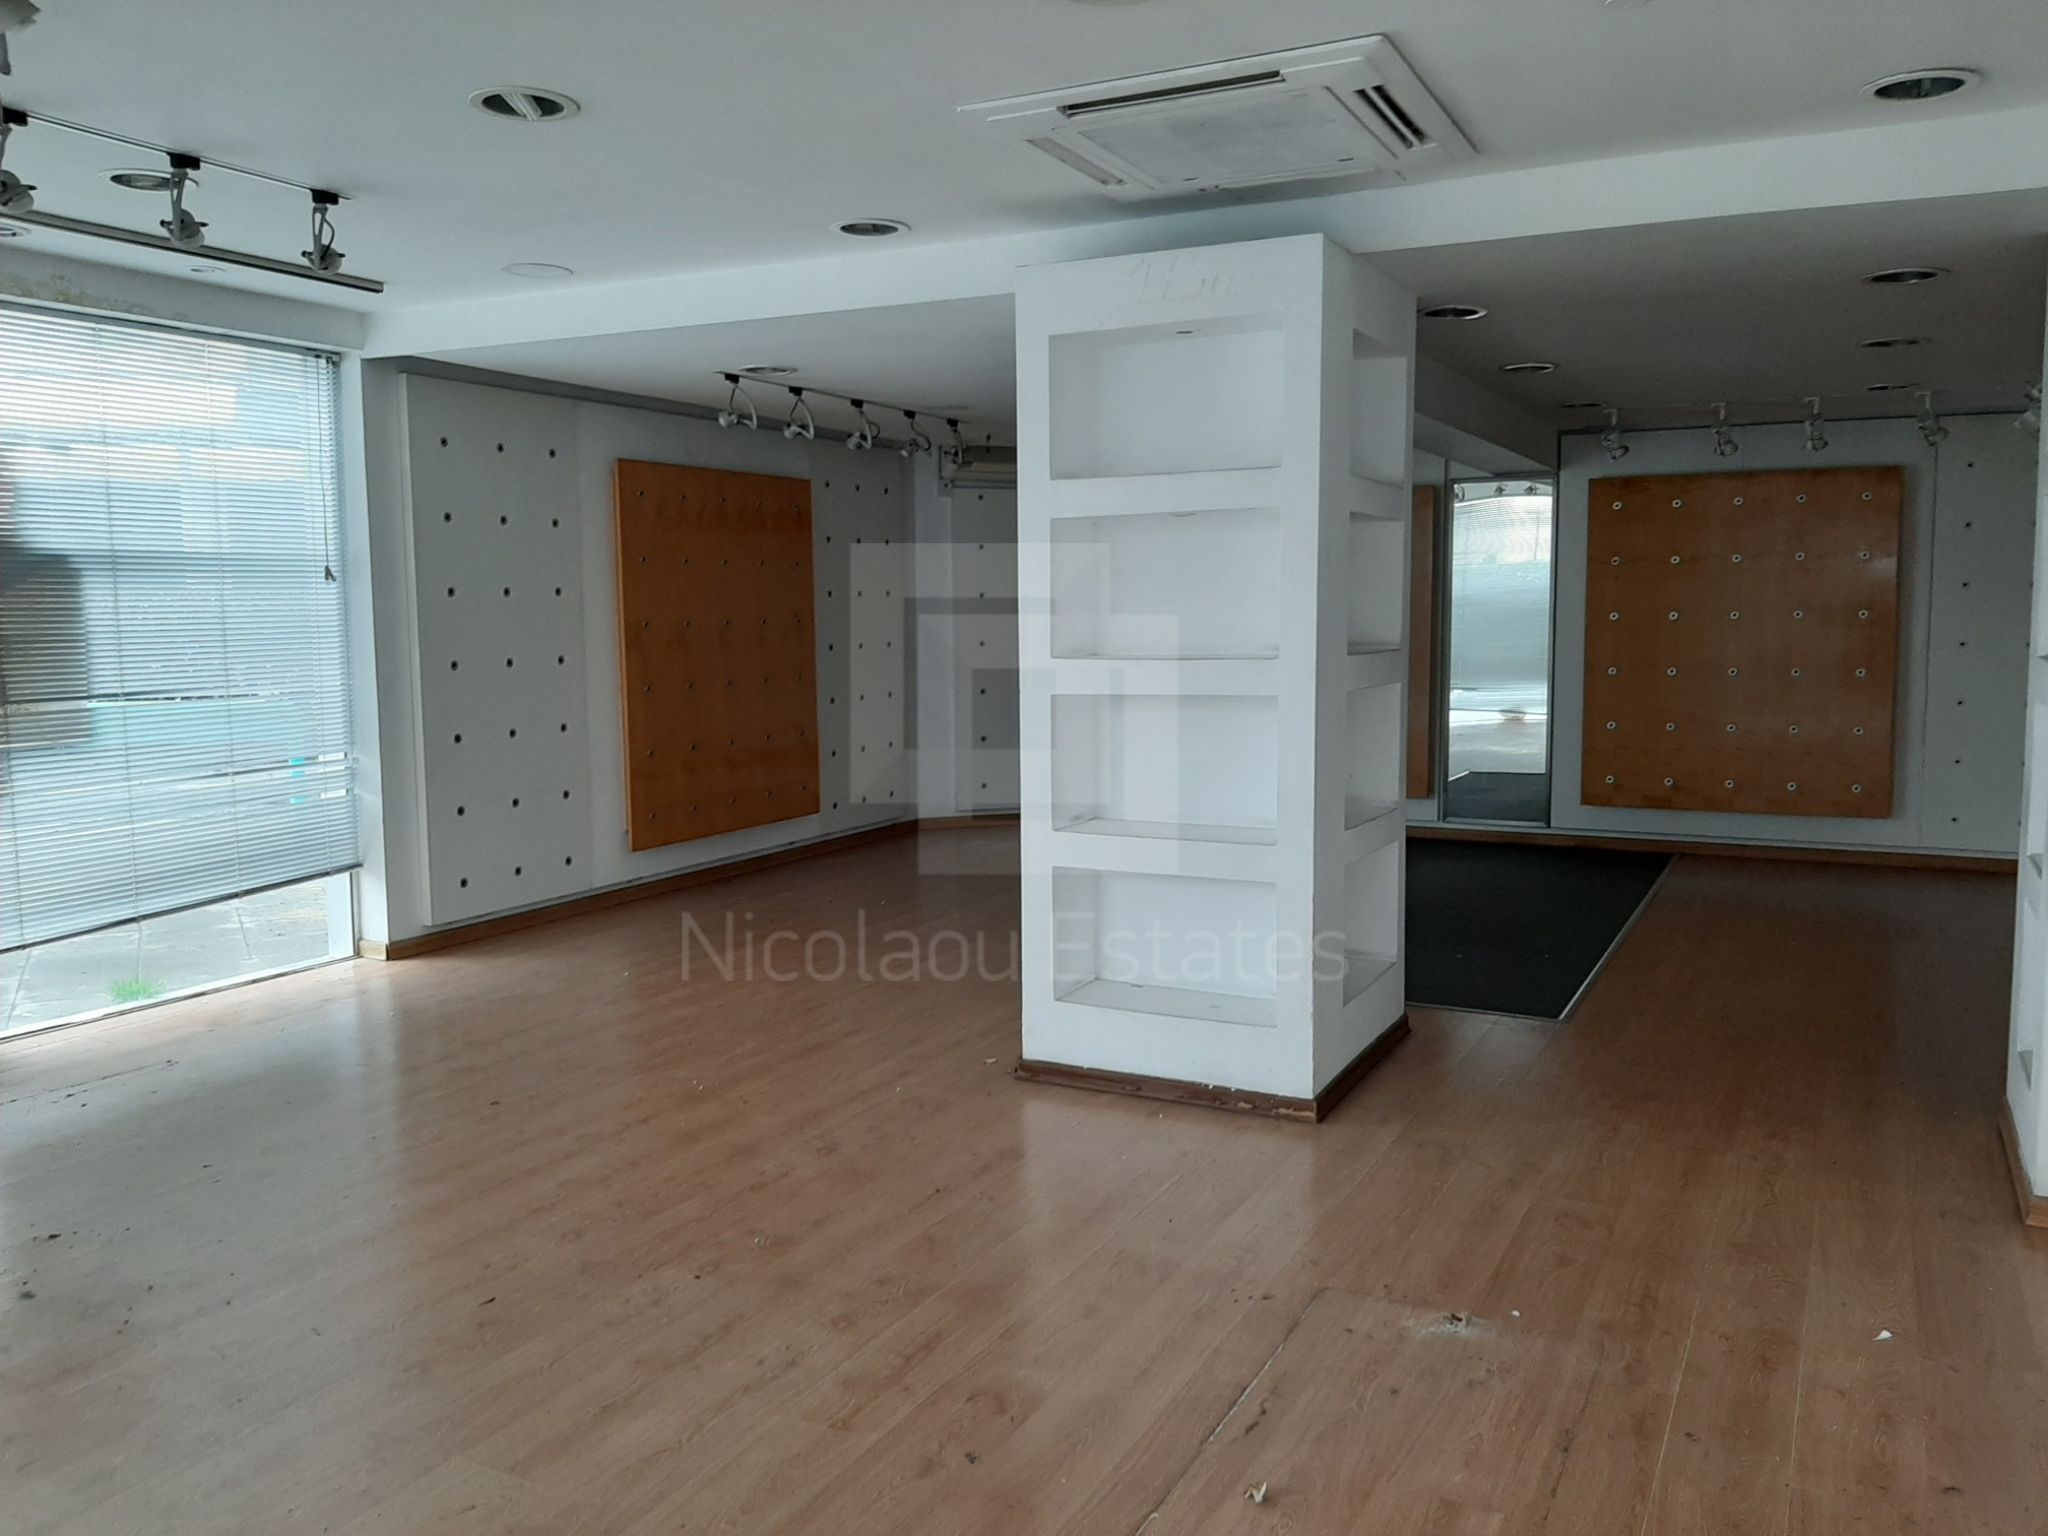 Corner shop for sale in Enaerios seafront area of Limassol